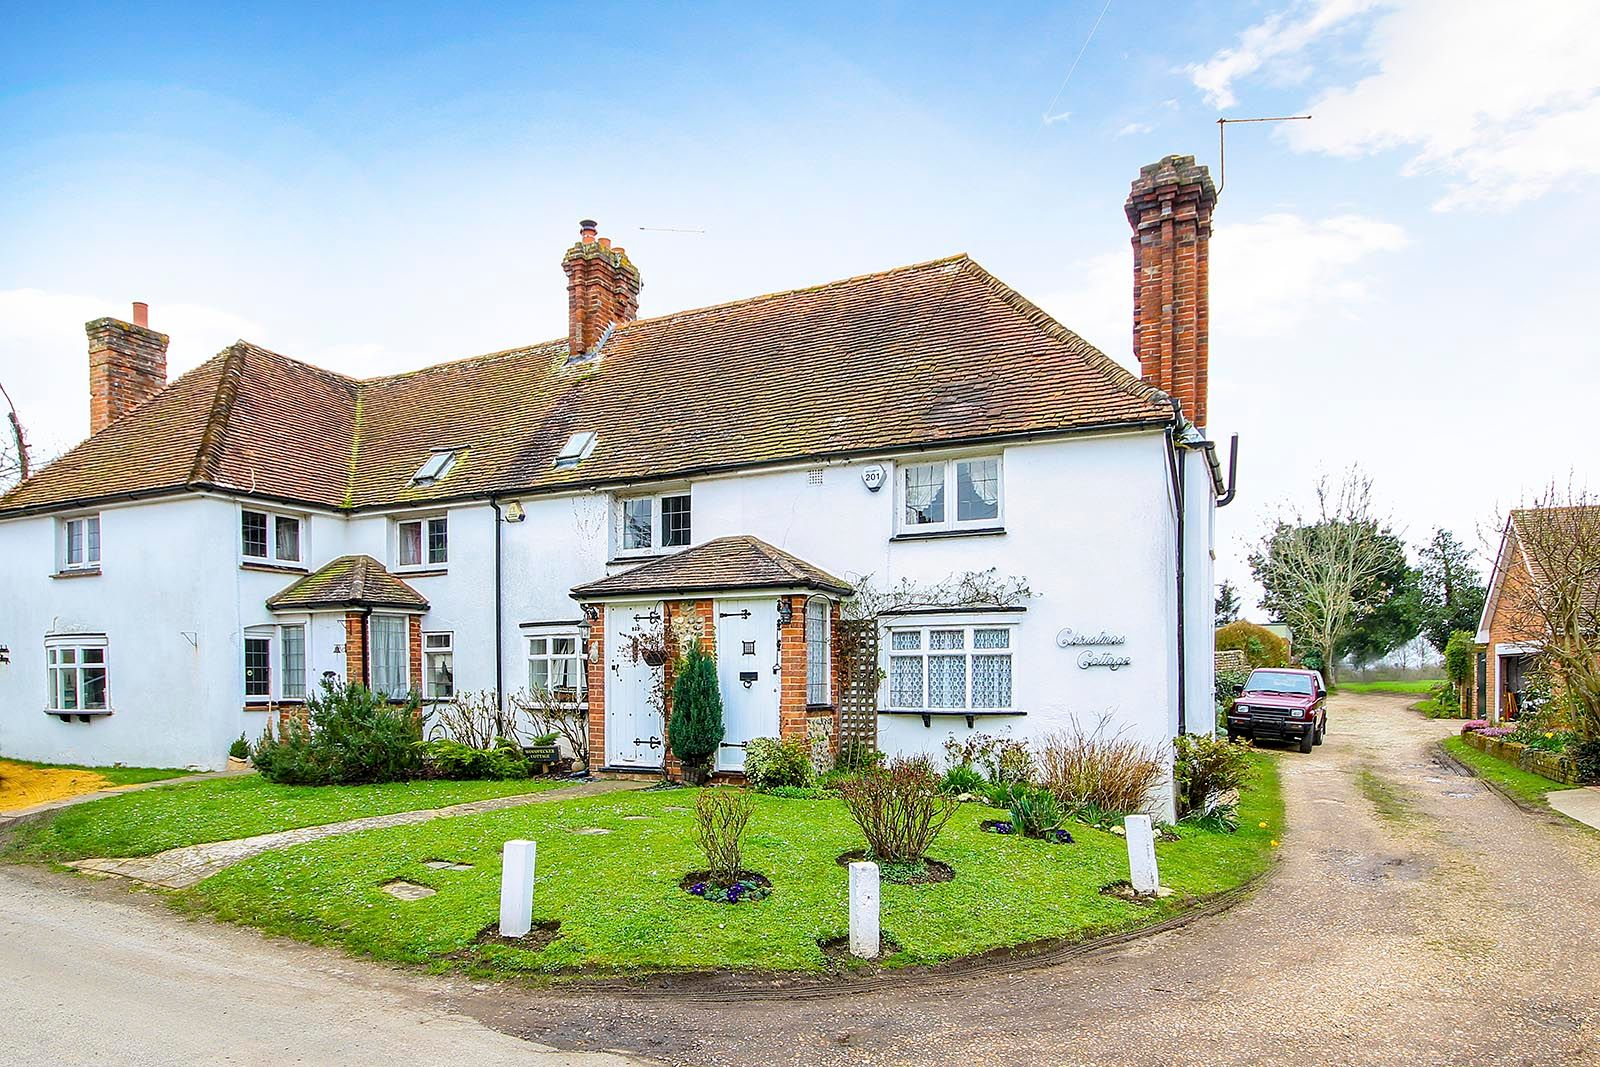 2 bed House for sale in Arundel - Property Image 1